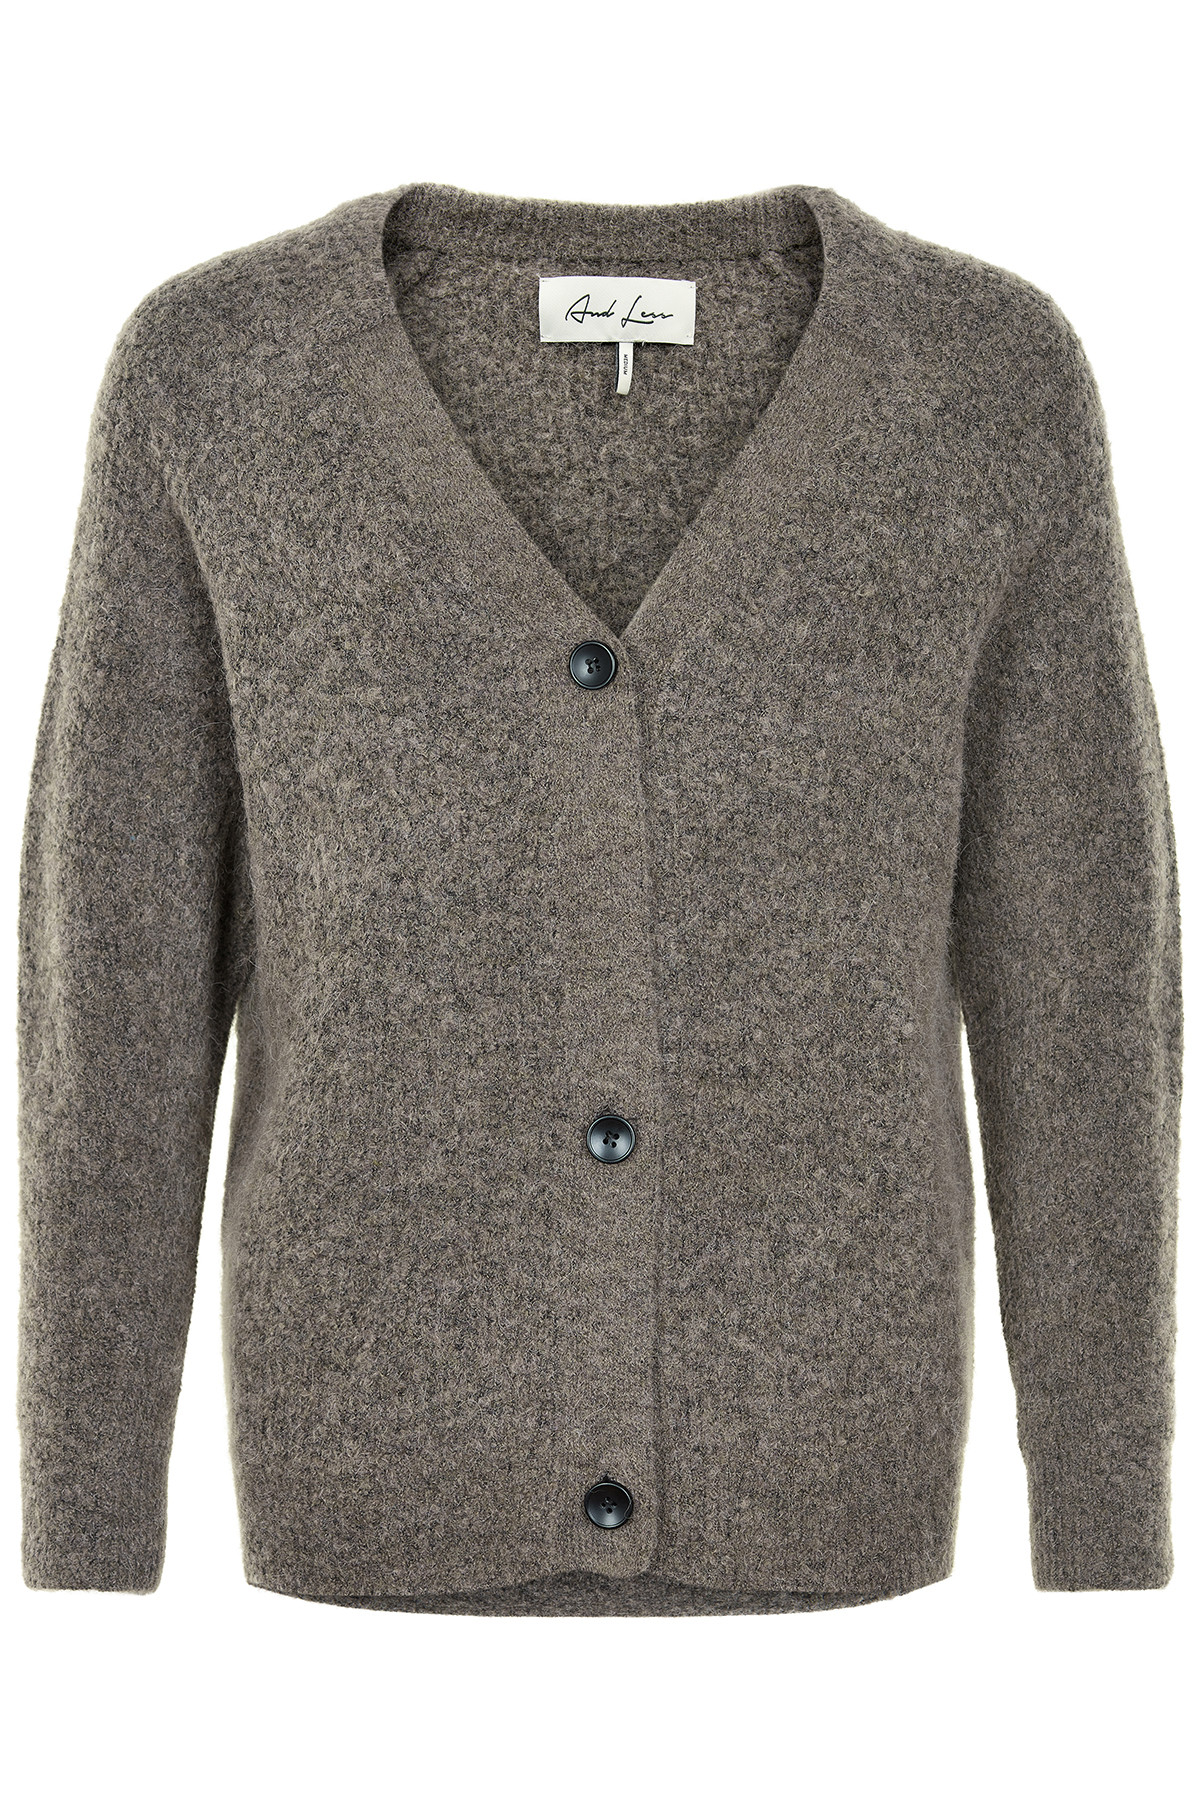 Image of   AND LESS ALENEN CARDIGAN 5519210 W (Walnut, S)